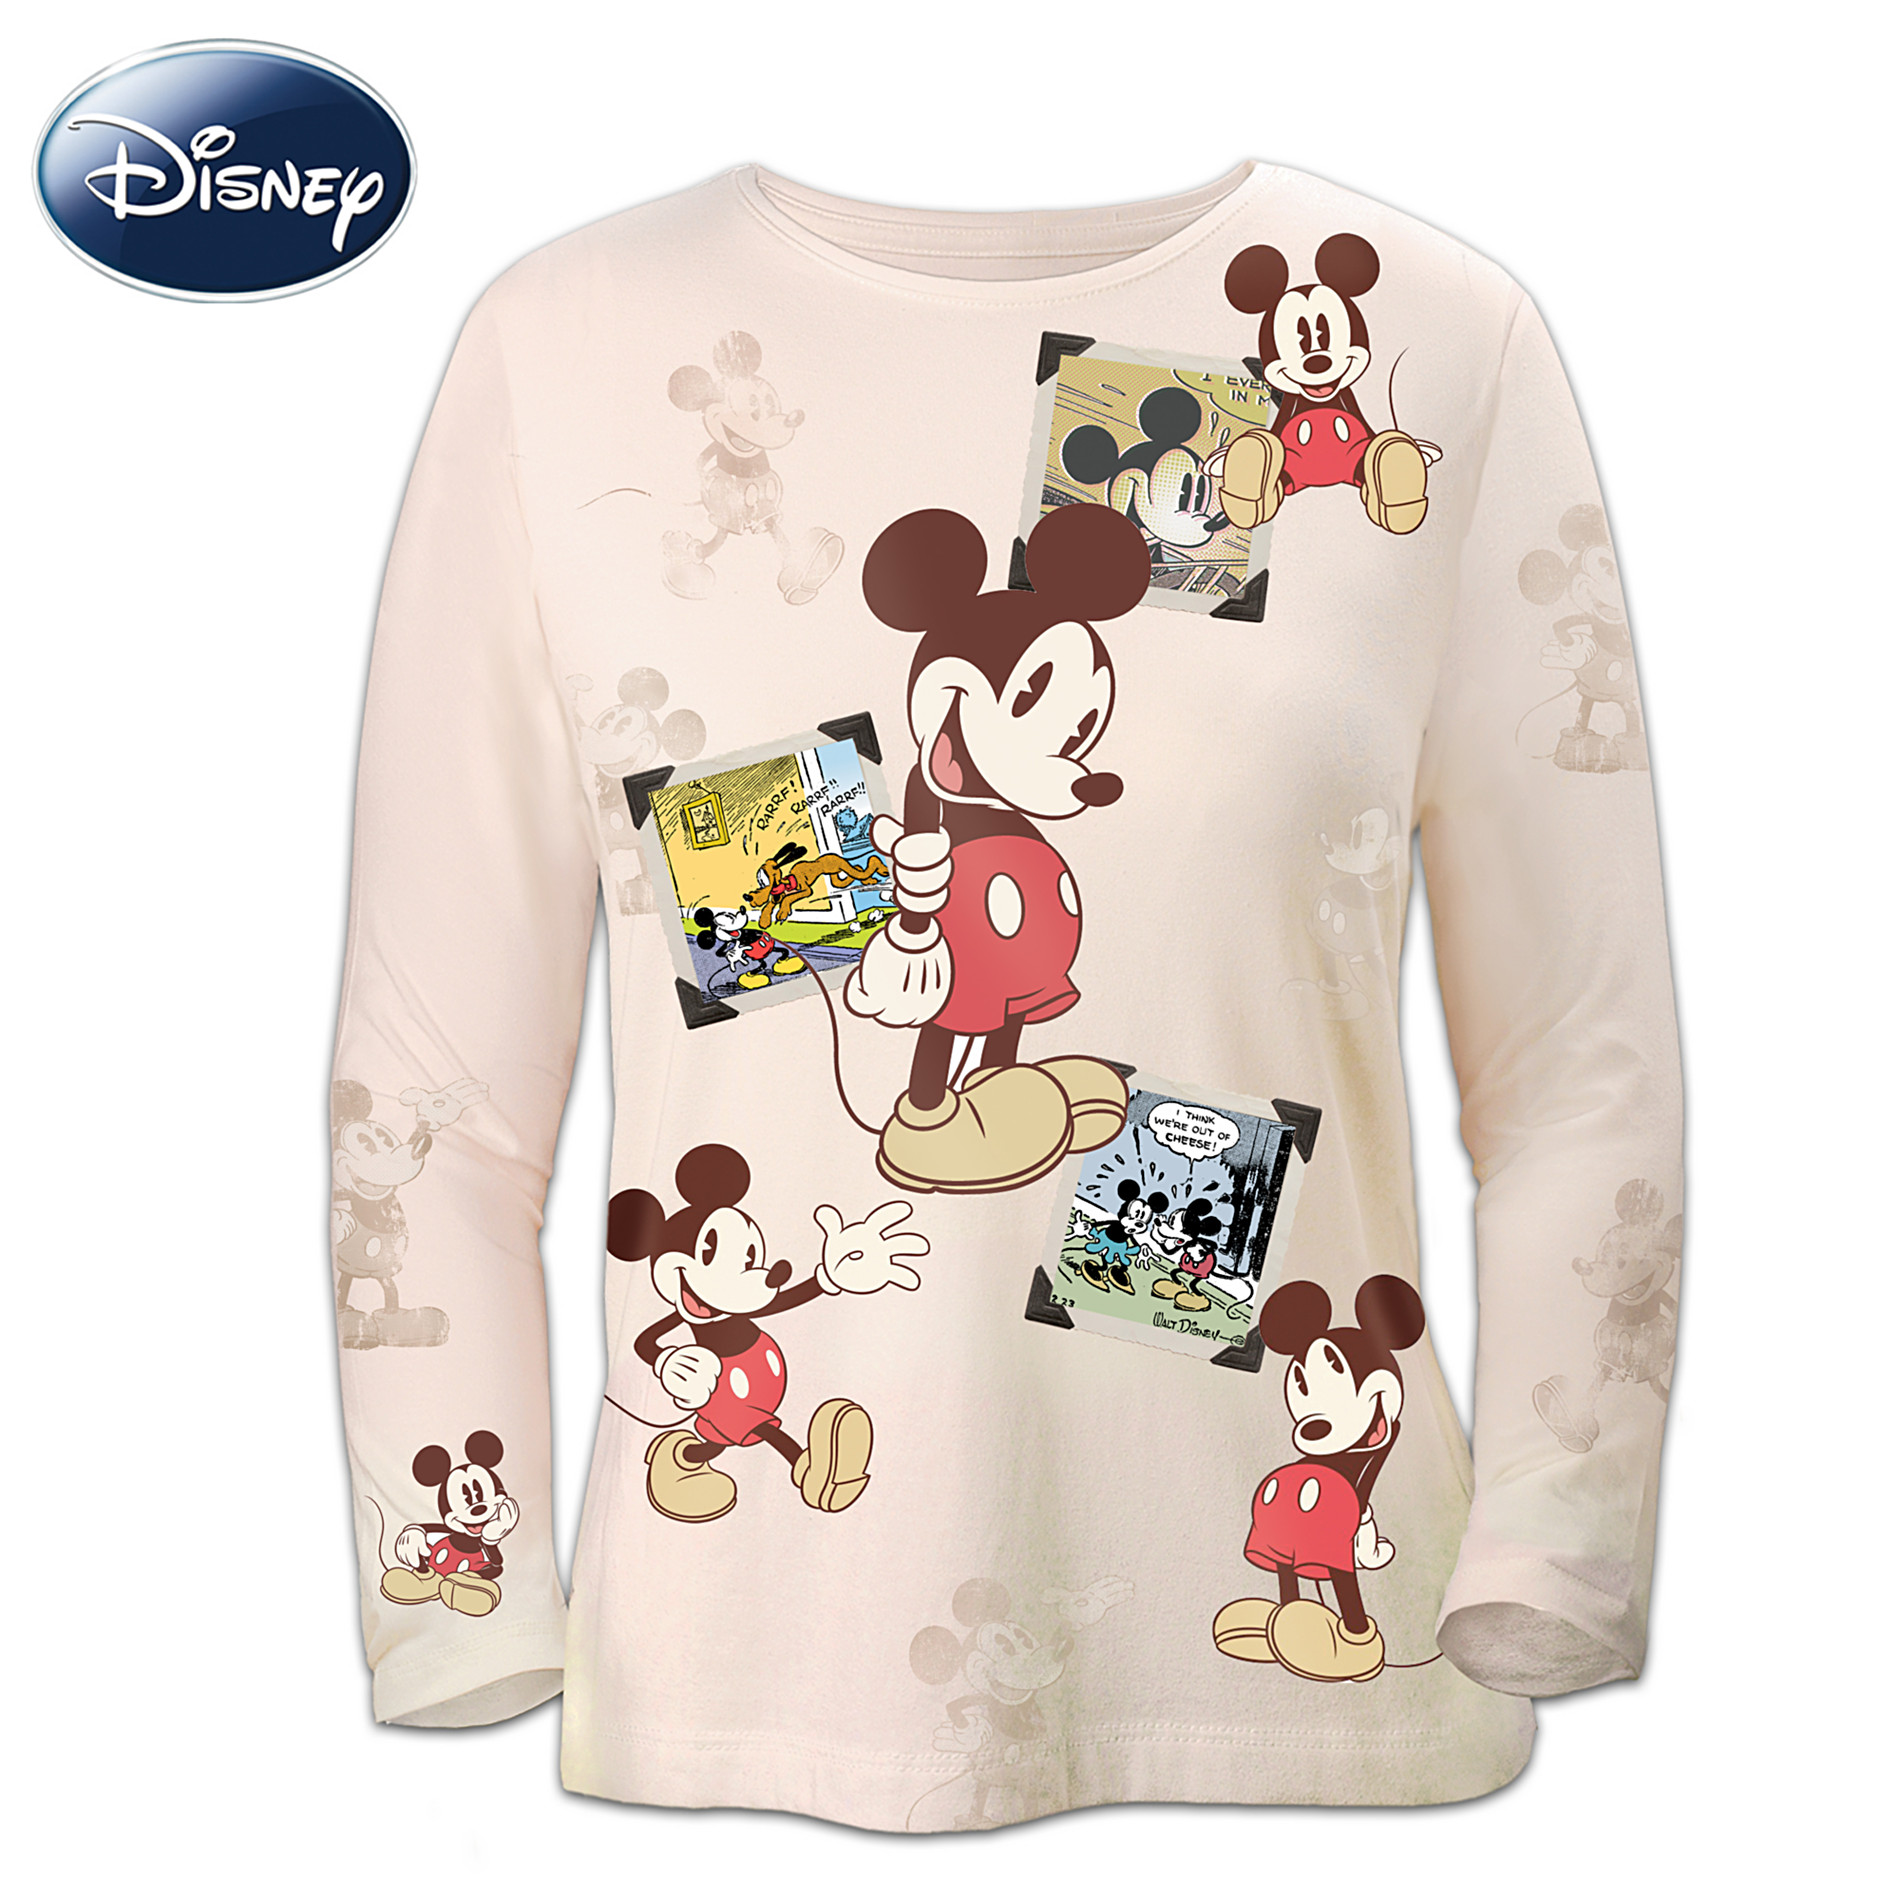 The Bradford Exchange Disney Retro Mickey Mouse Sepia-Toned Women's Shirt at Sears.com